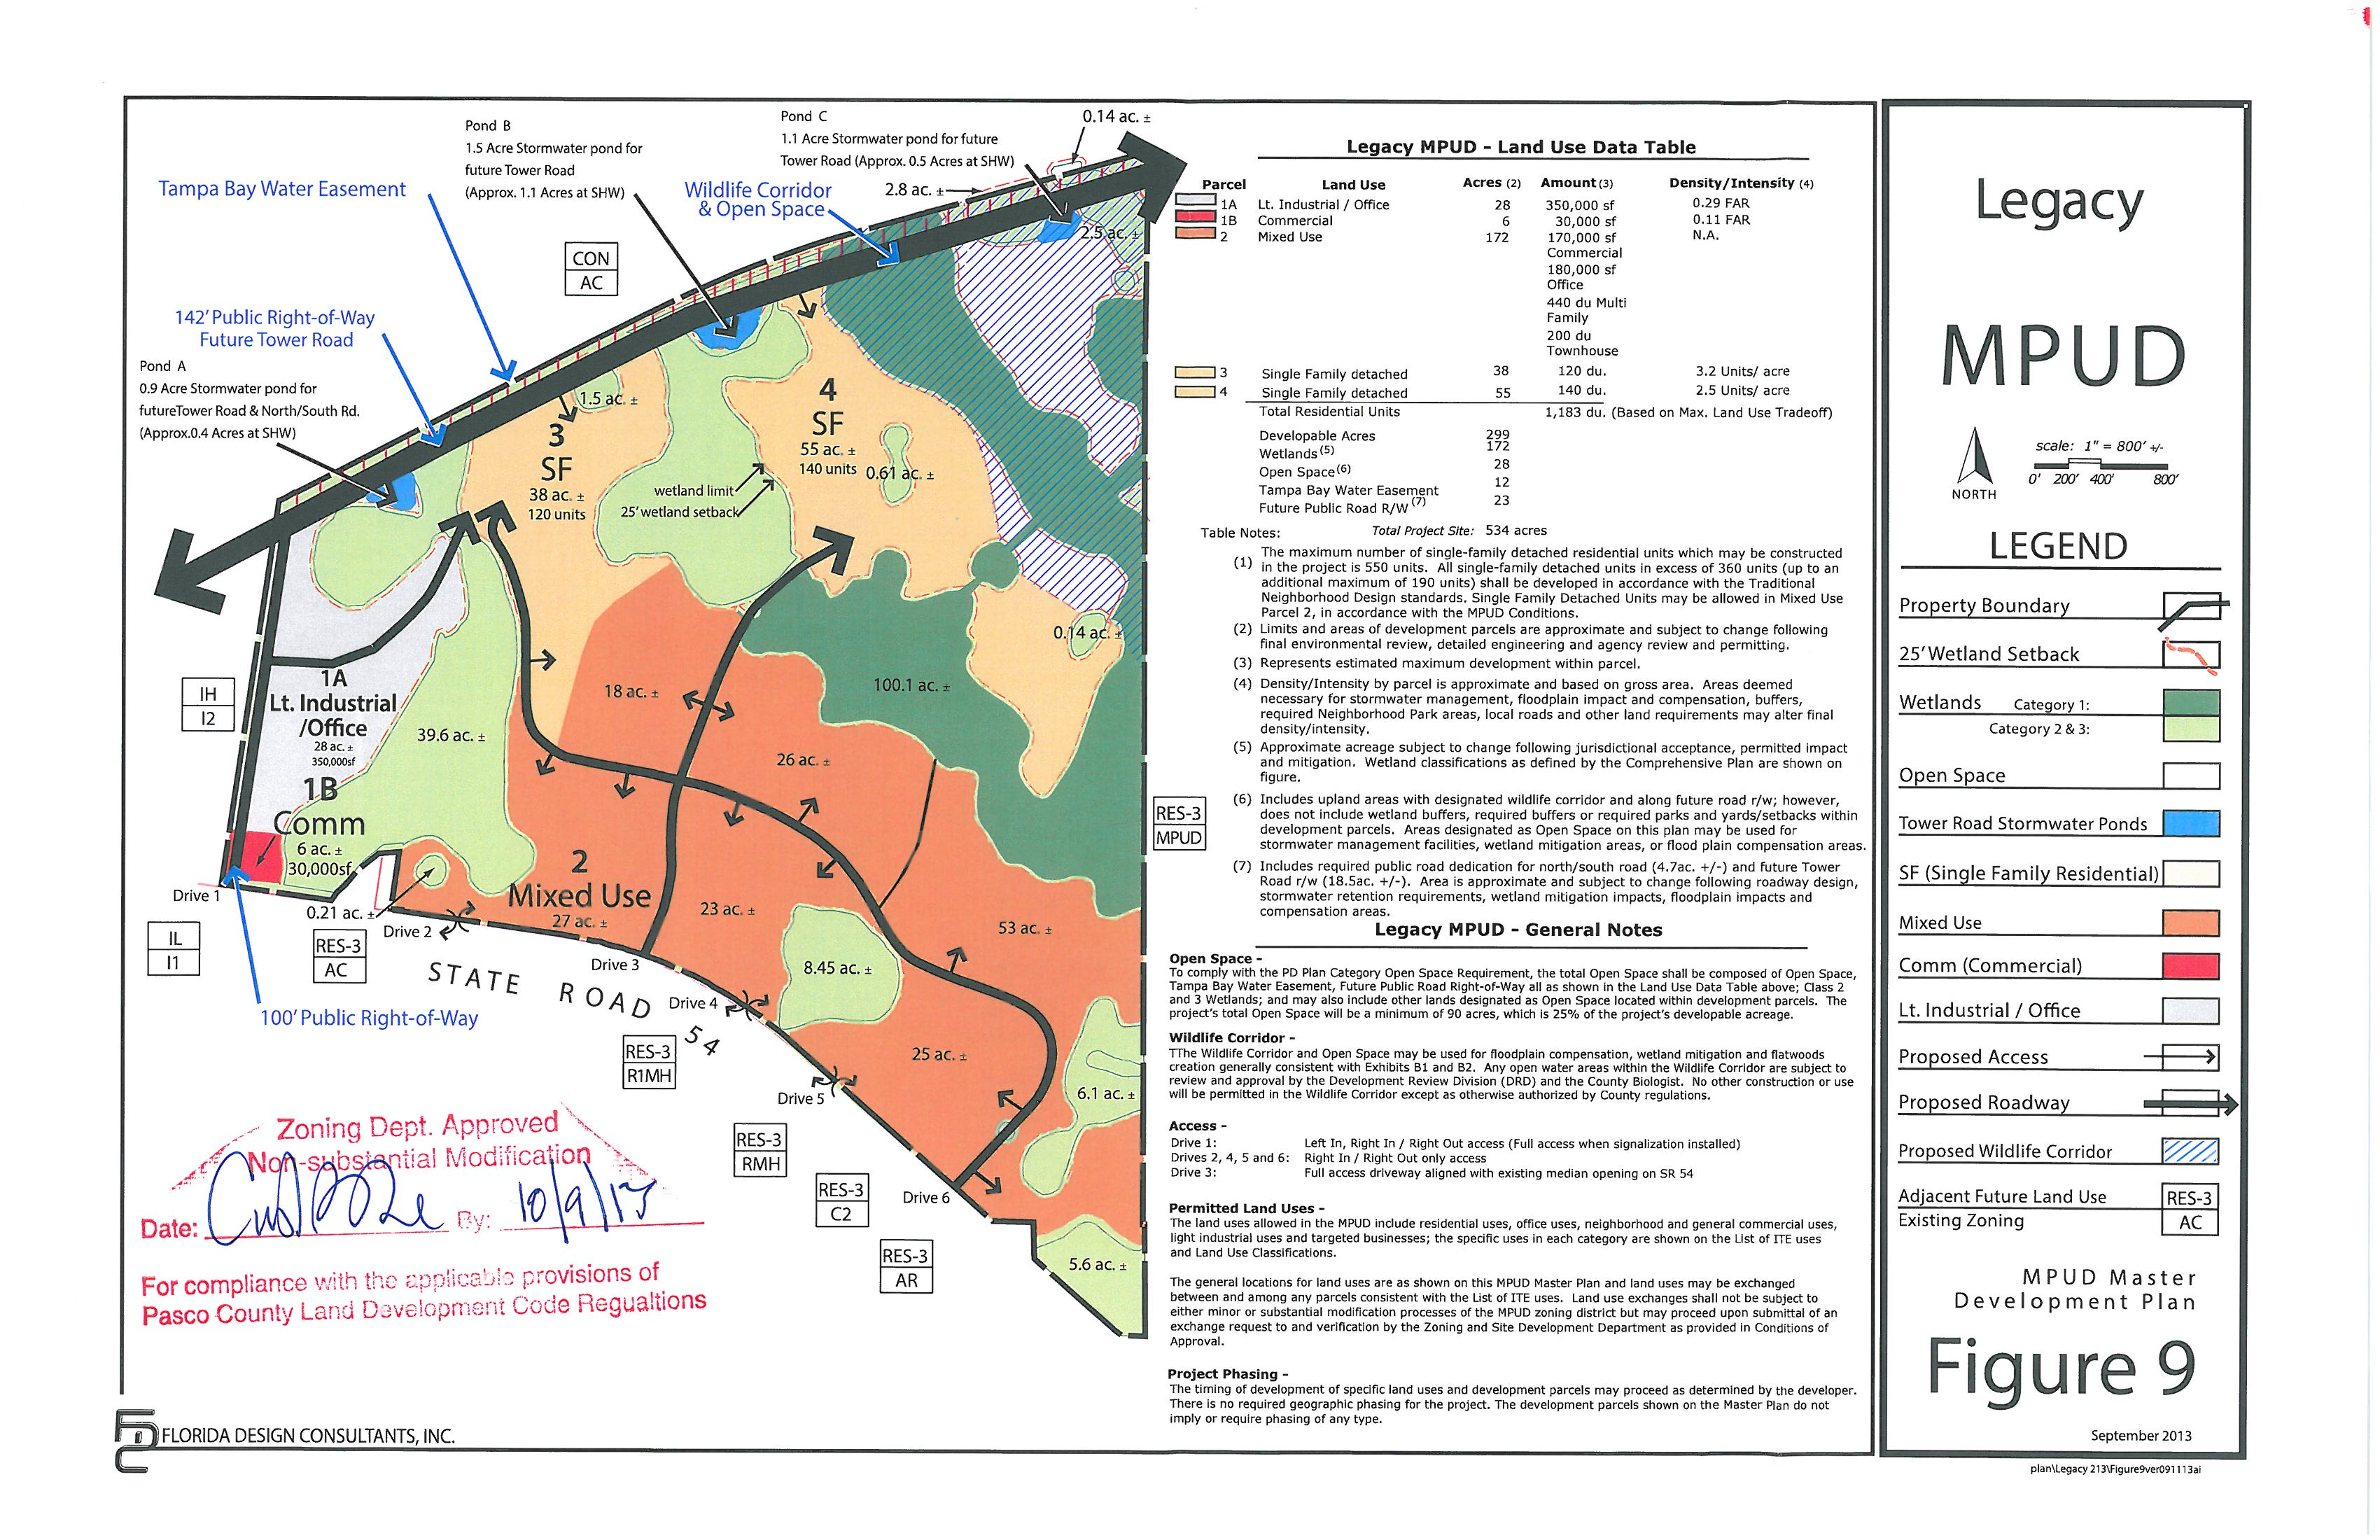 Approved MPUD Plan